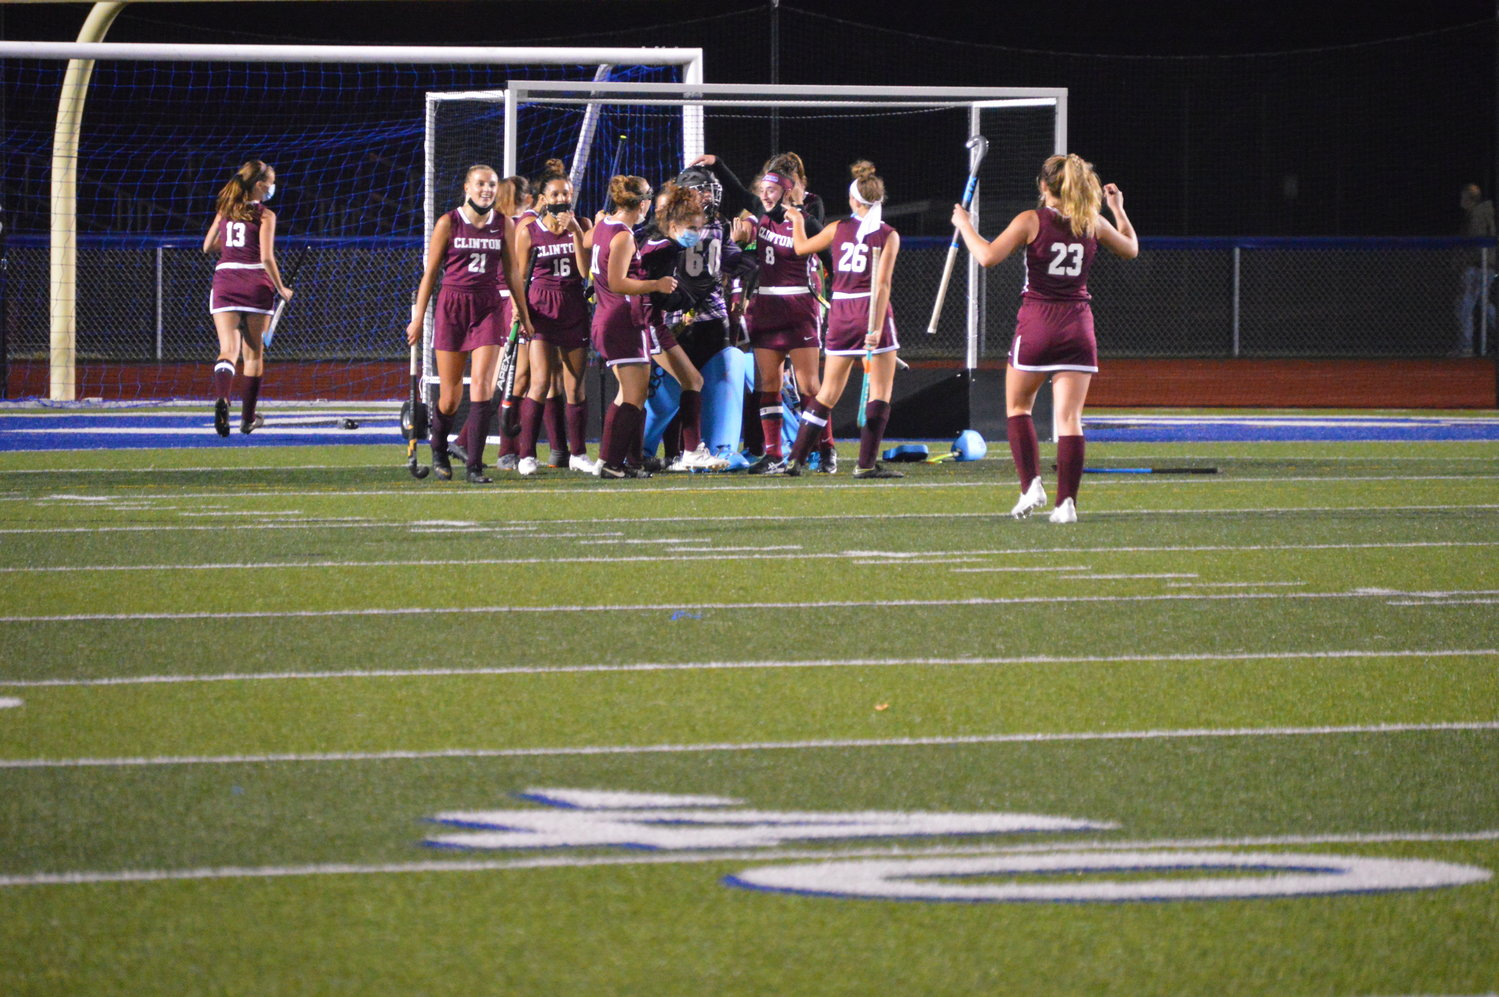 CELEBRATING THE WIN — The Clinton field hockey team comes together after defeating the defending Section III Class C champion Camden, 1-0 on Monday night, Oct. 5 in Camden.